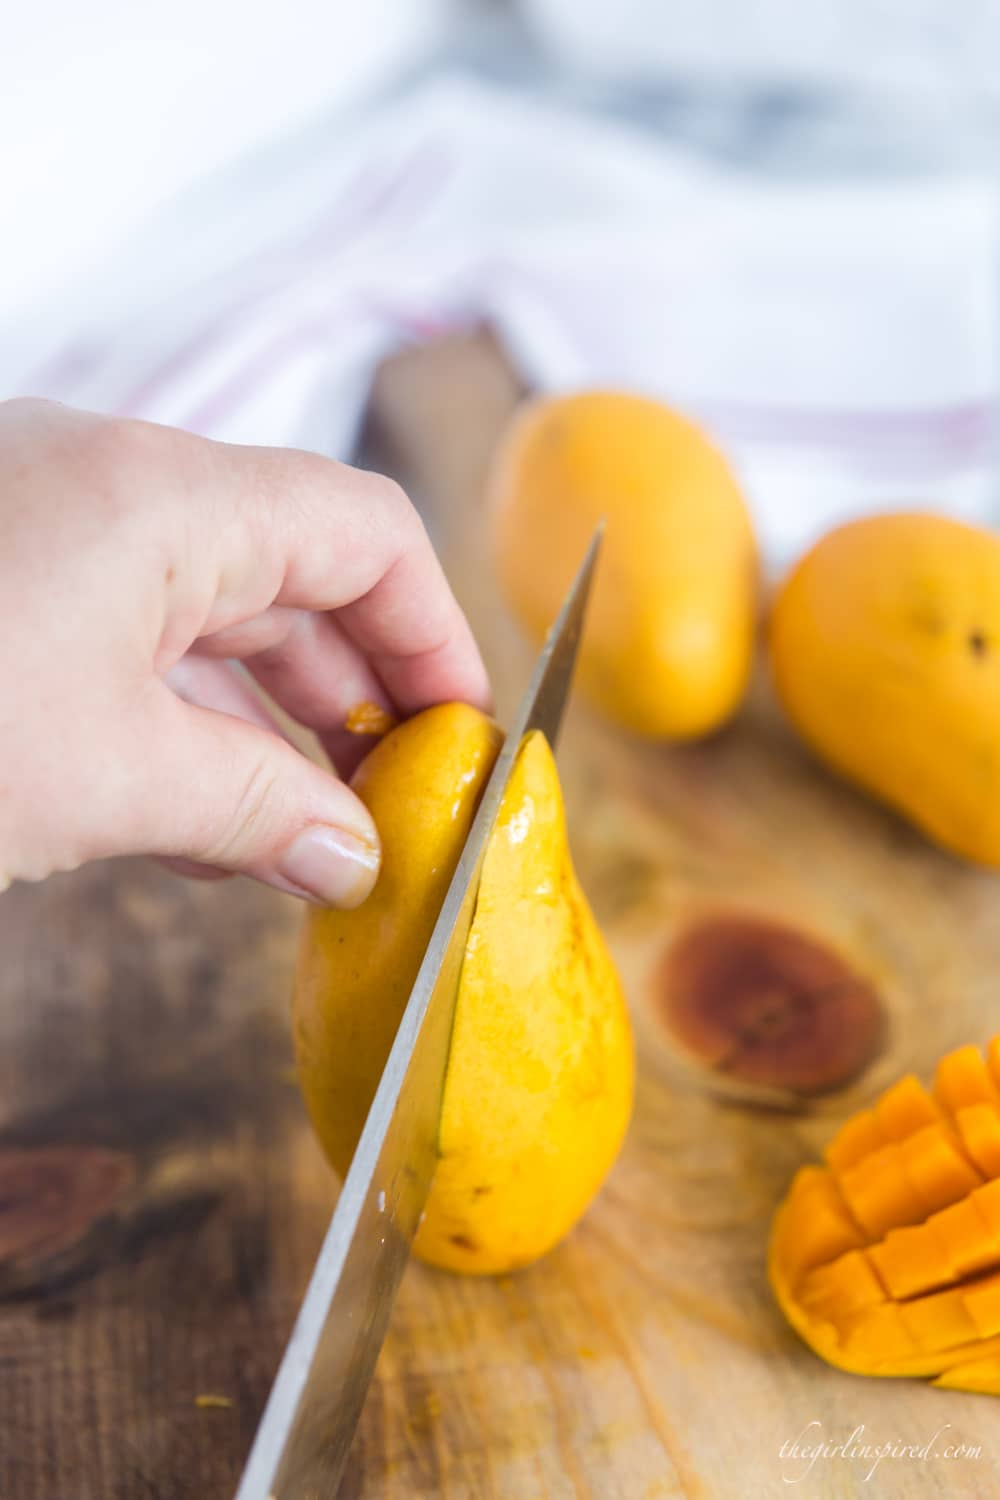 knife cutting a mango on wooden cutting board with mangos in the background